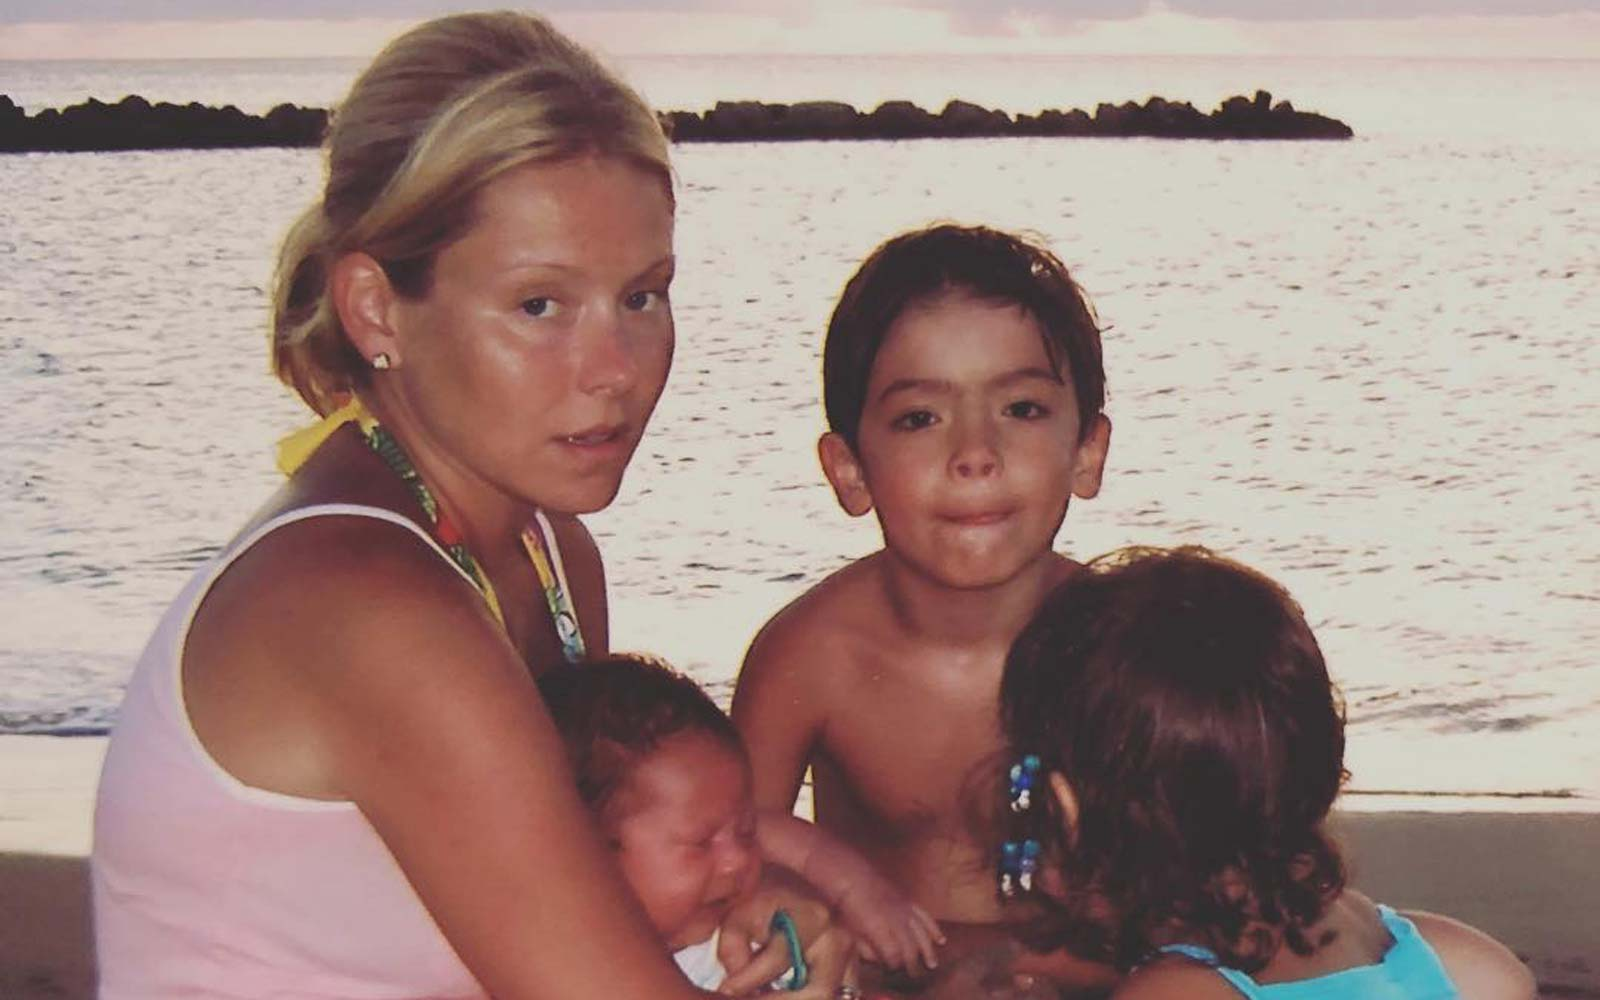 Kelly Ripa Loves Her Kids but Says a Trip With Them is 'Not a Vacation'